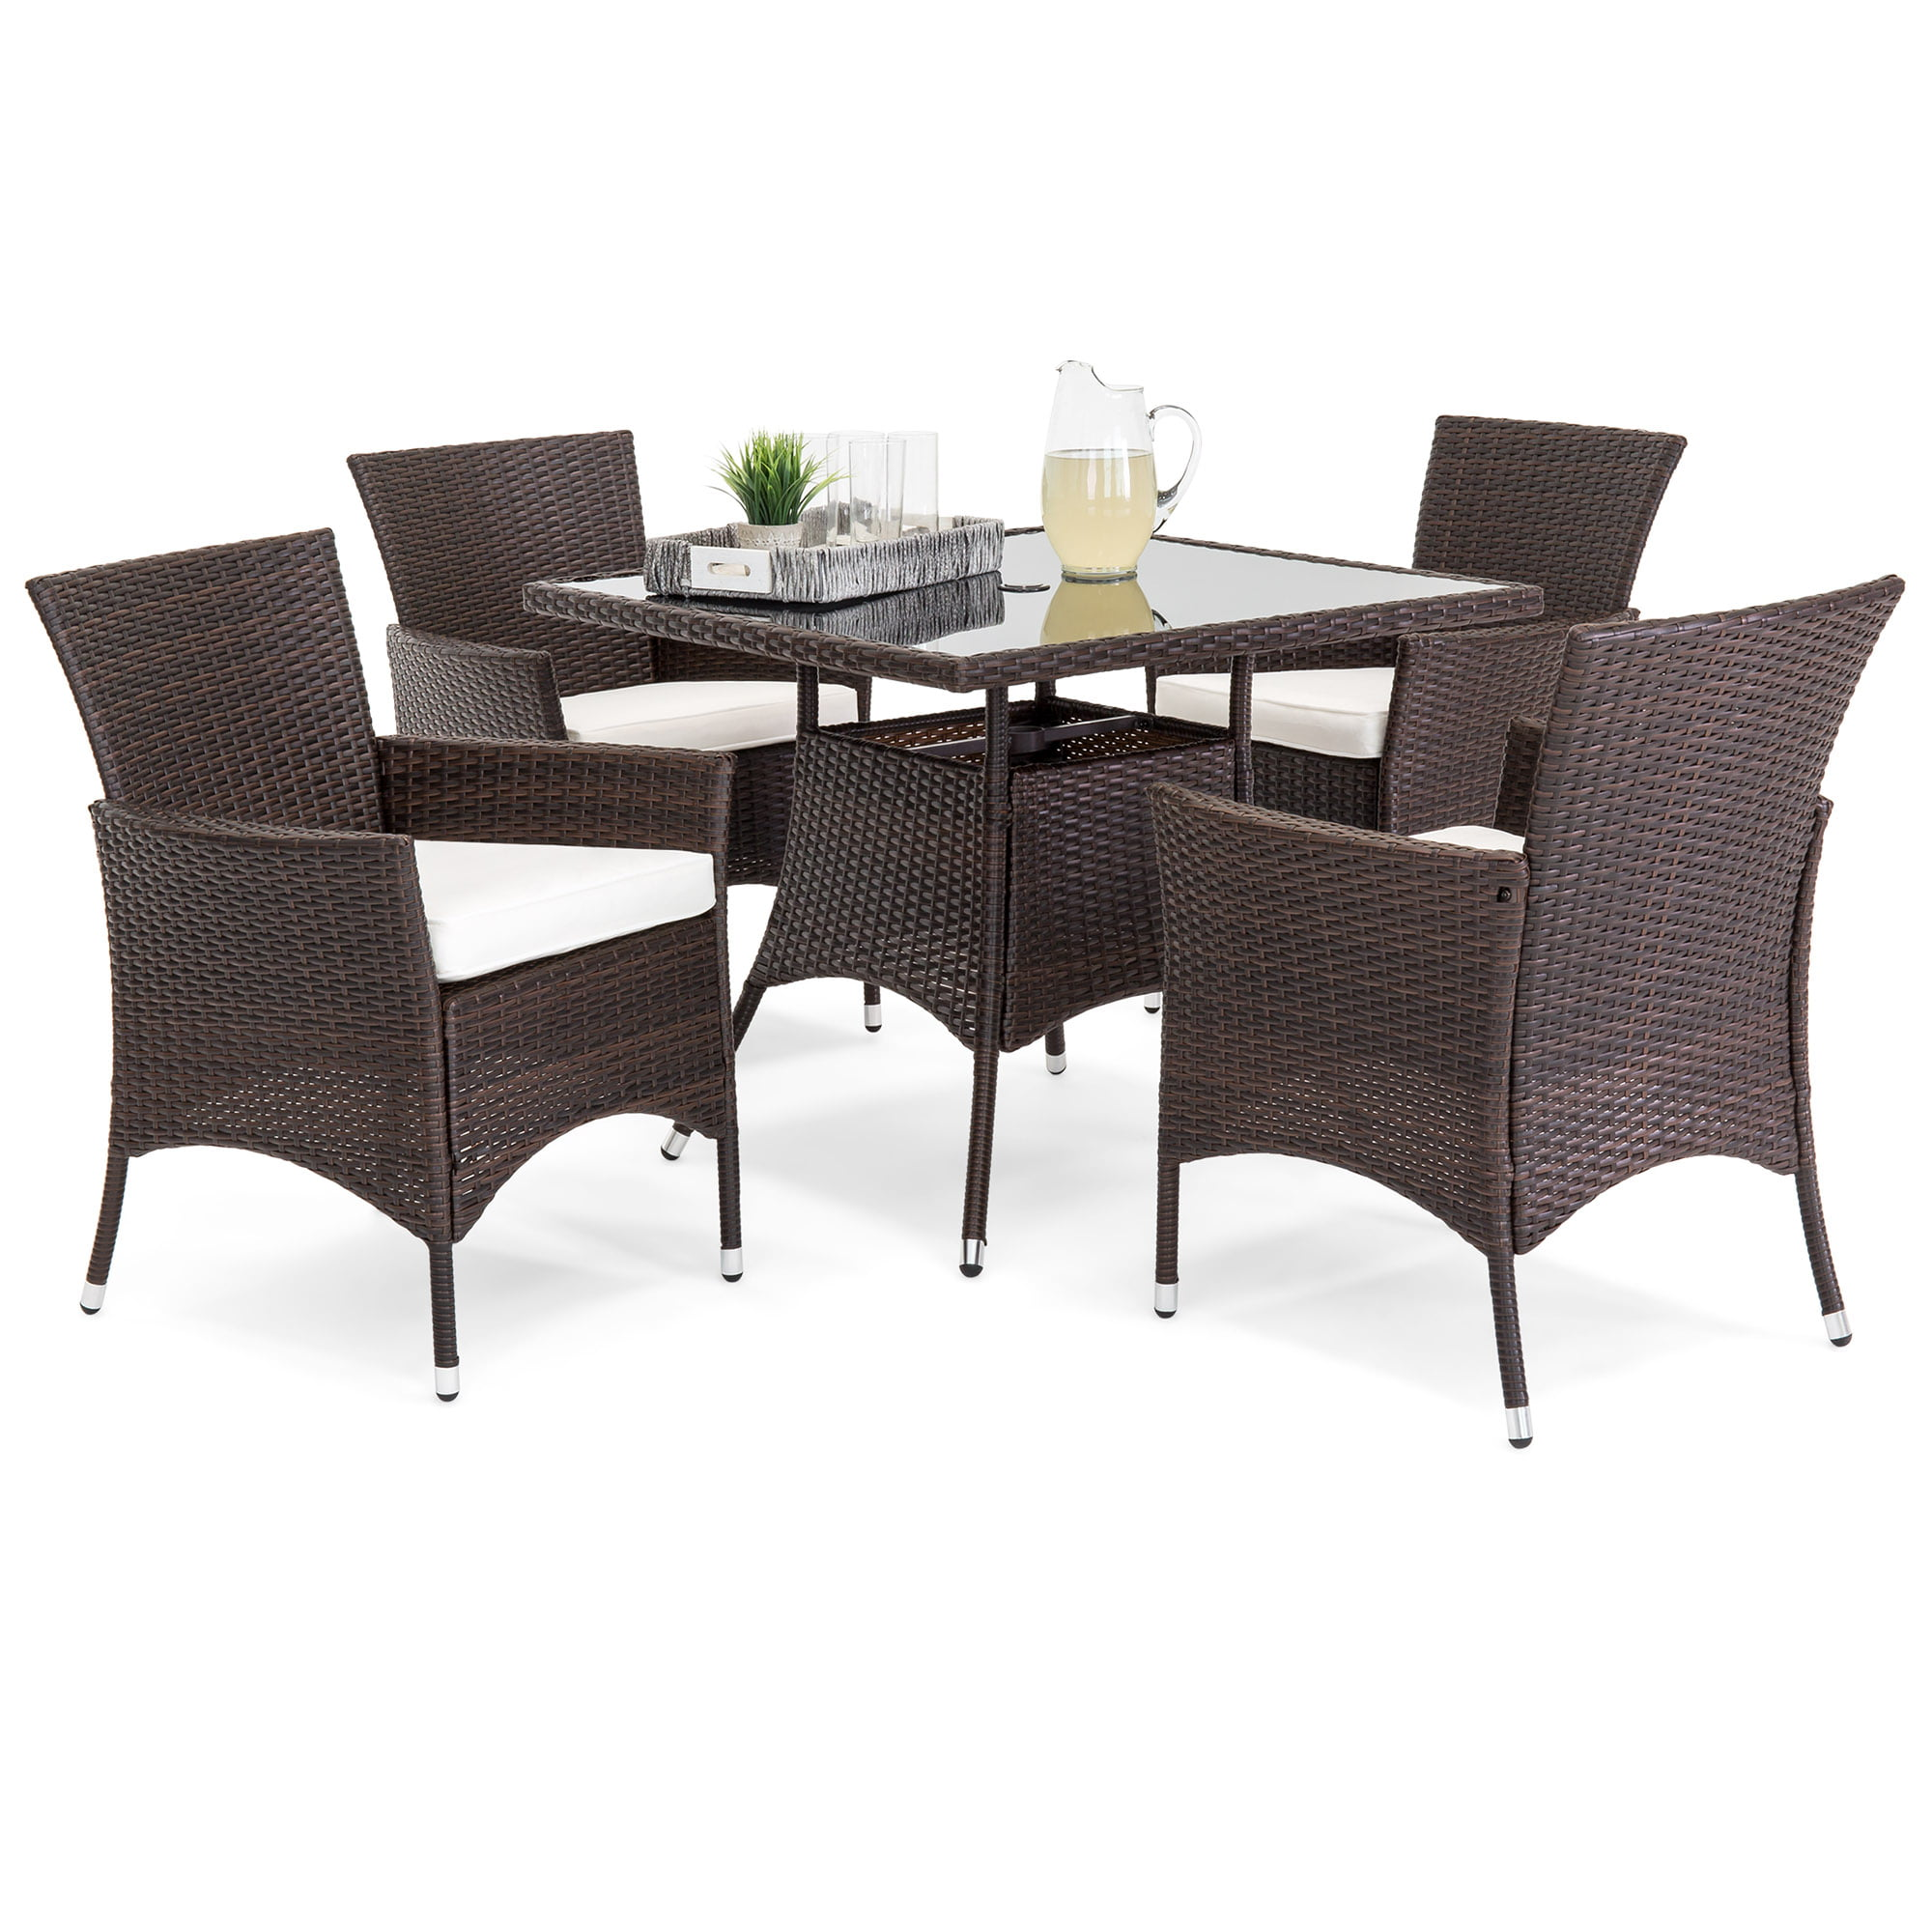 Best Choice Product 5-Piece Indoor Outdoor Wicker Patio